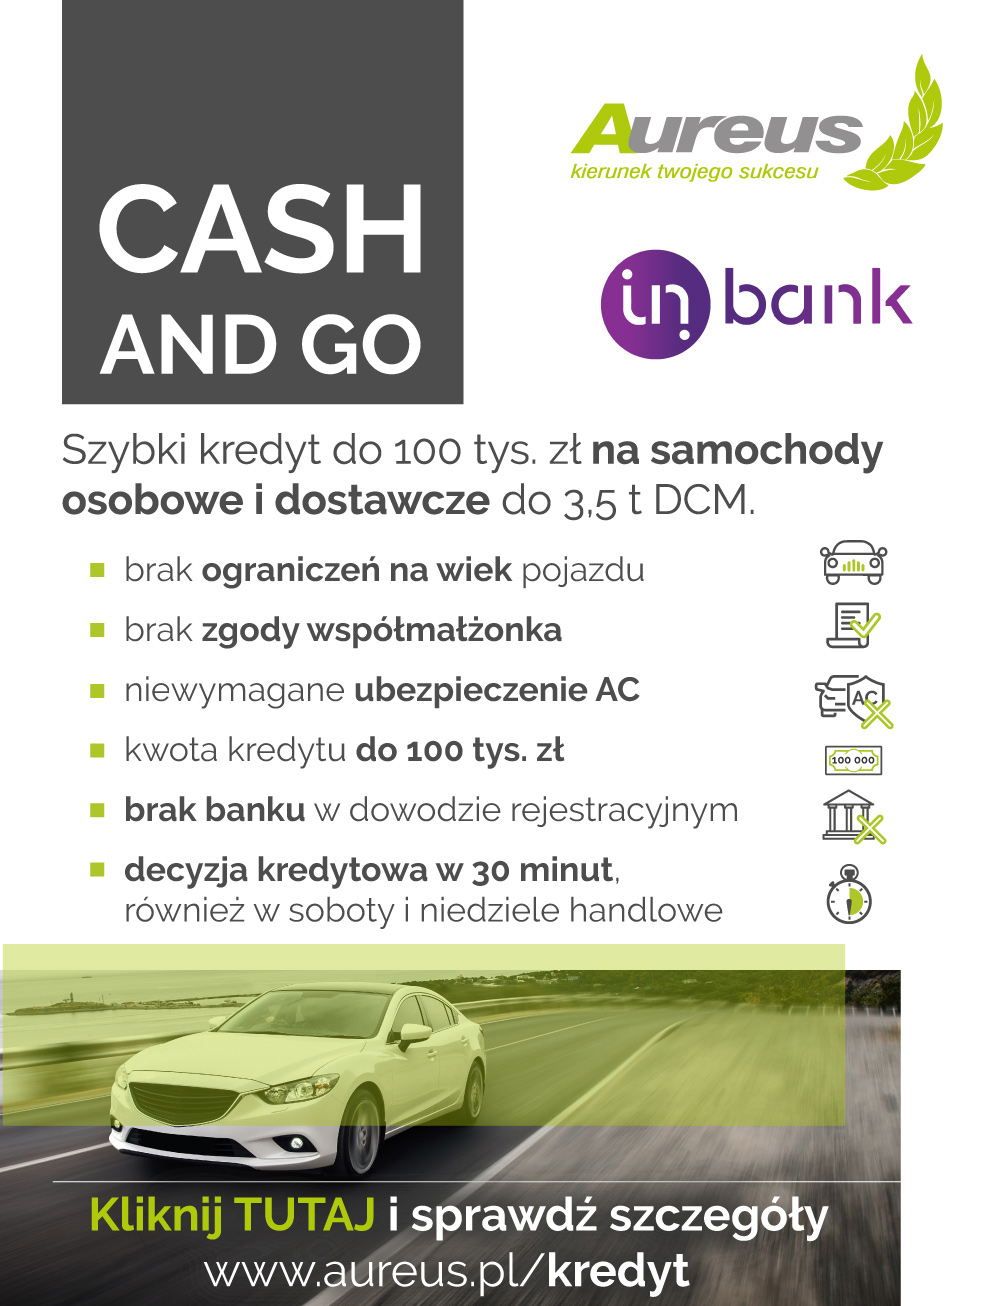 Cash And Go